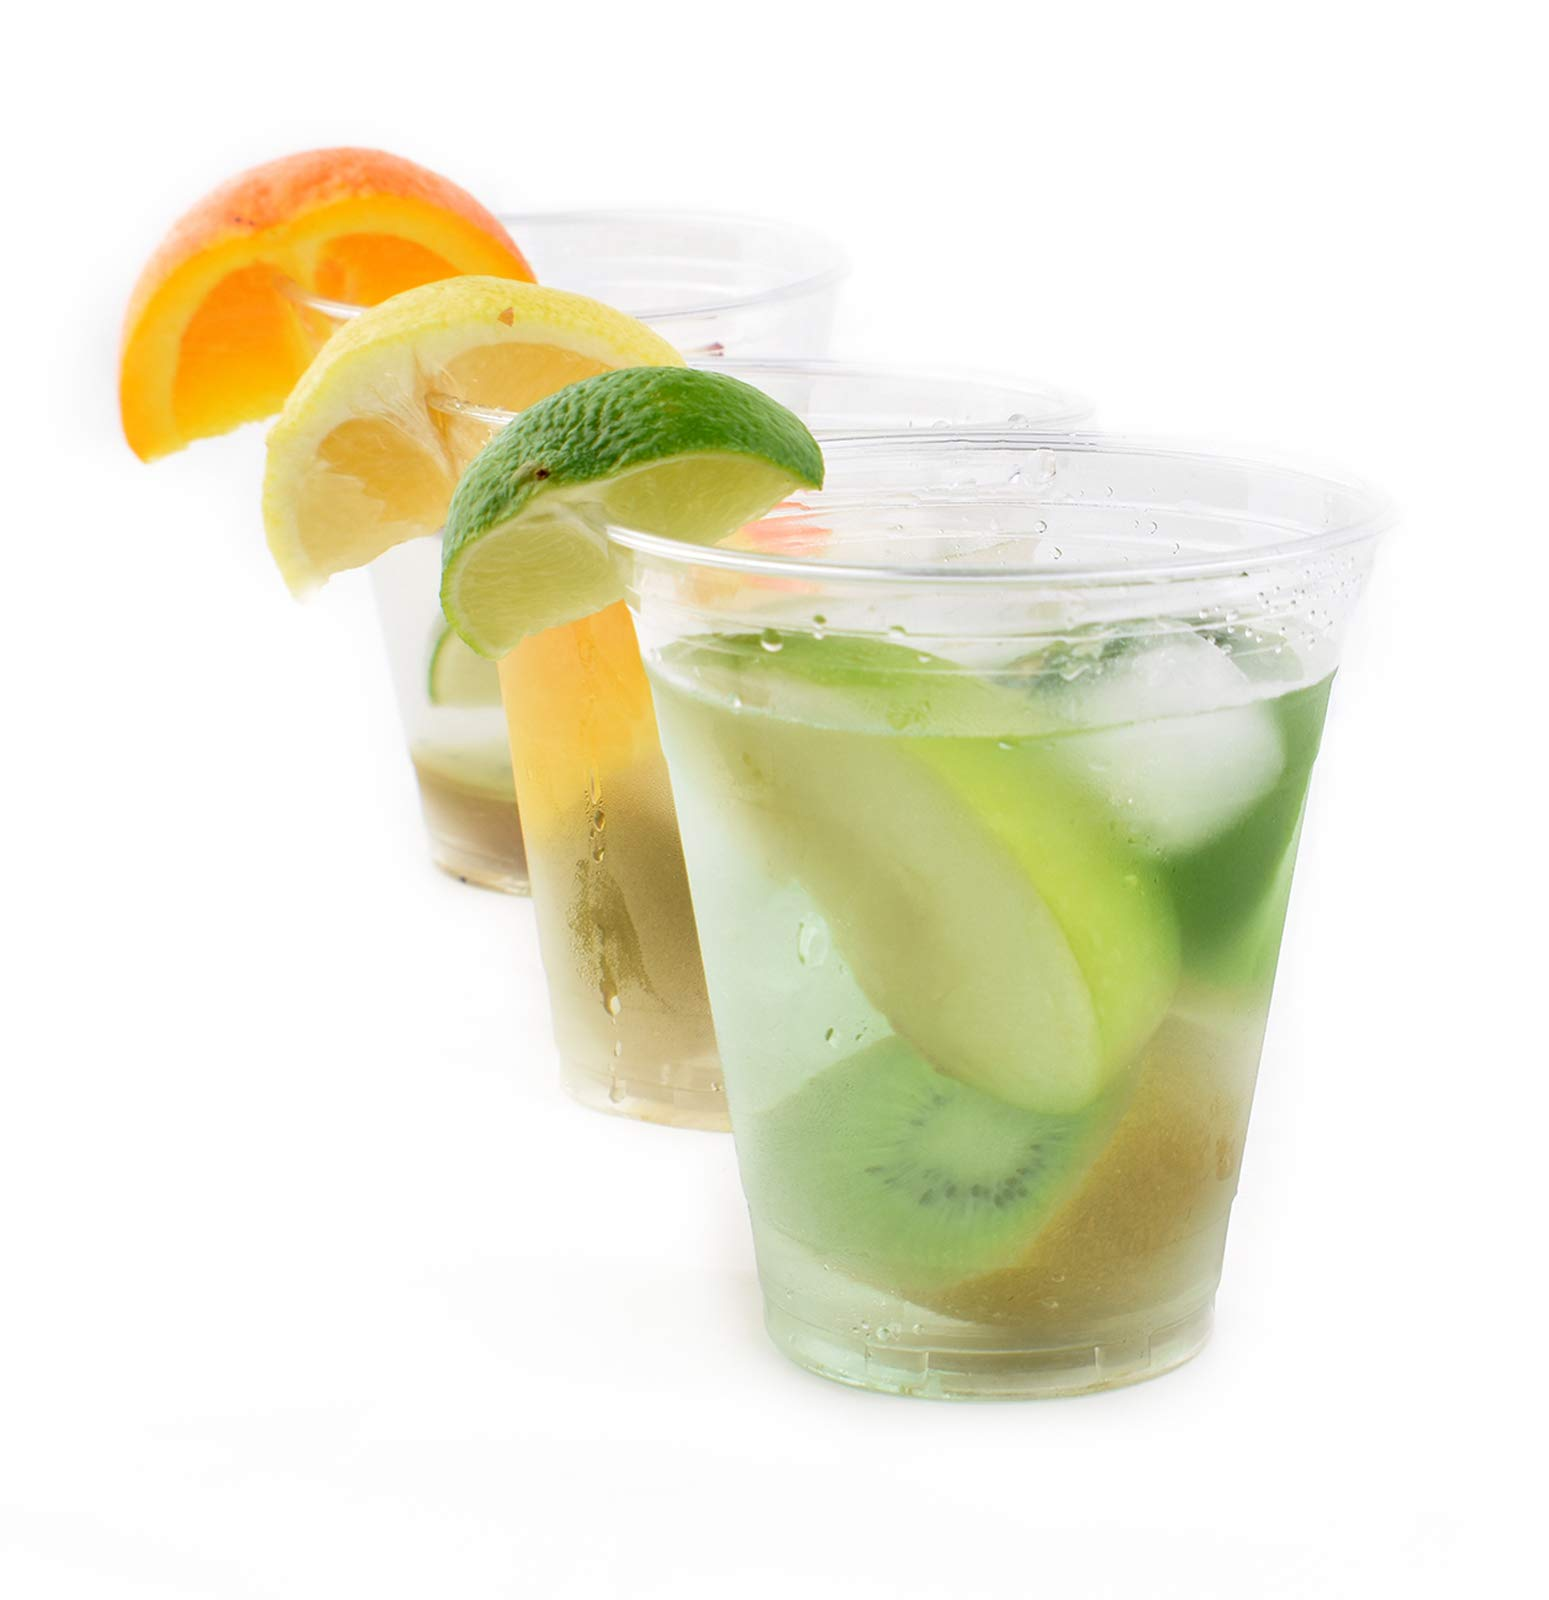 [200 SETS] Plastic Disposable Cups with Lids - Premium 12 oz (ounces) Crystal Clear PET for Cold Drinks Iced Coffee Tea Juices Smoothies Slush Soda Cocktails Beer Kids Safe (12oz Cups + Flat Lids)